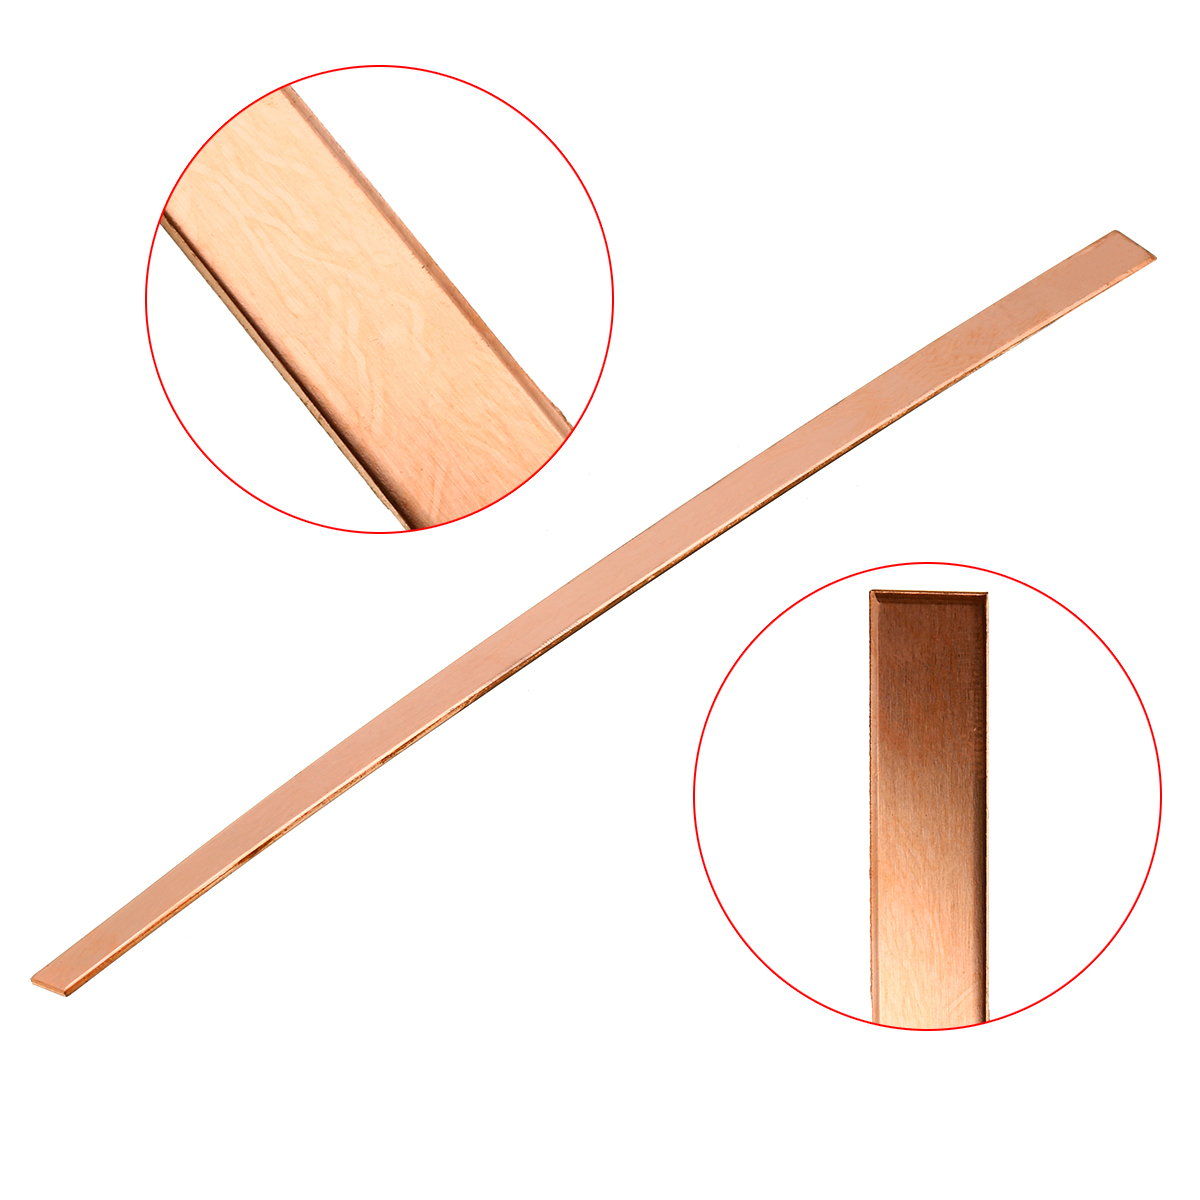 1Pcs 10mmx250mm 99% High Purity Copper Strip T2 Cu Metal Copper Bar Plate 1.5mm For DIY Home Power Tools